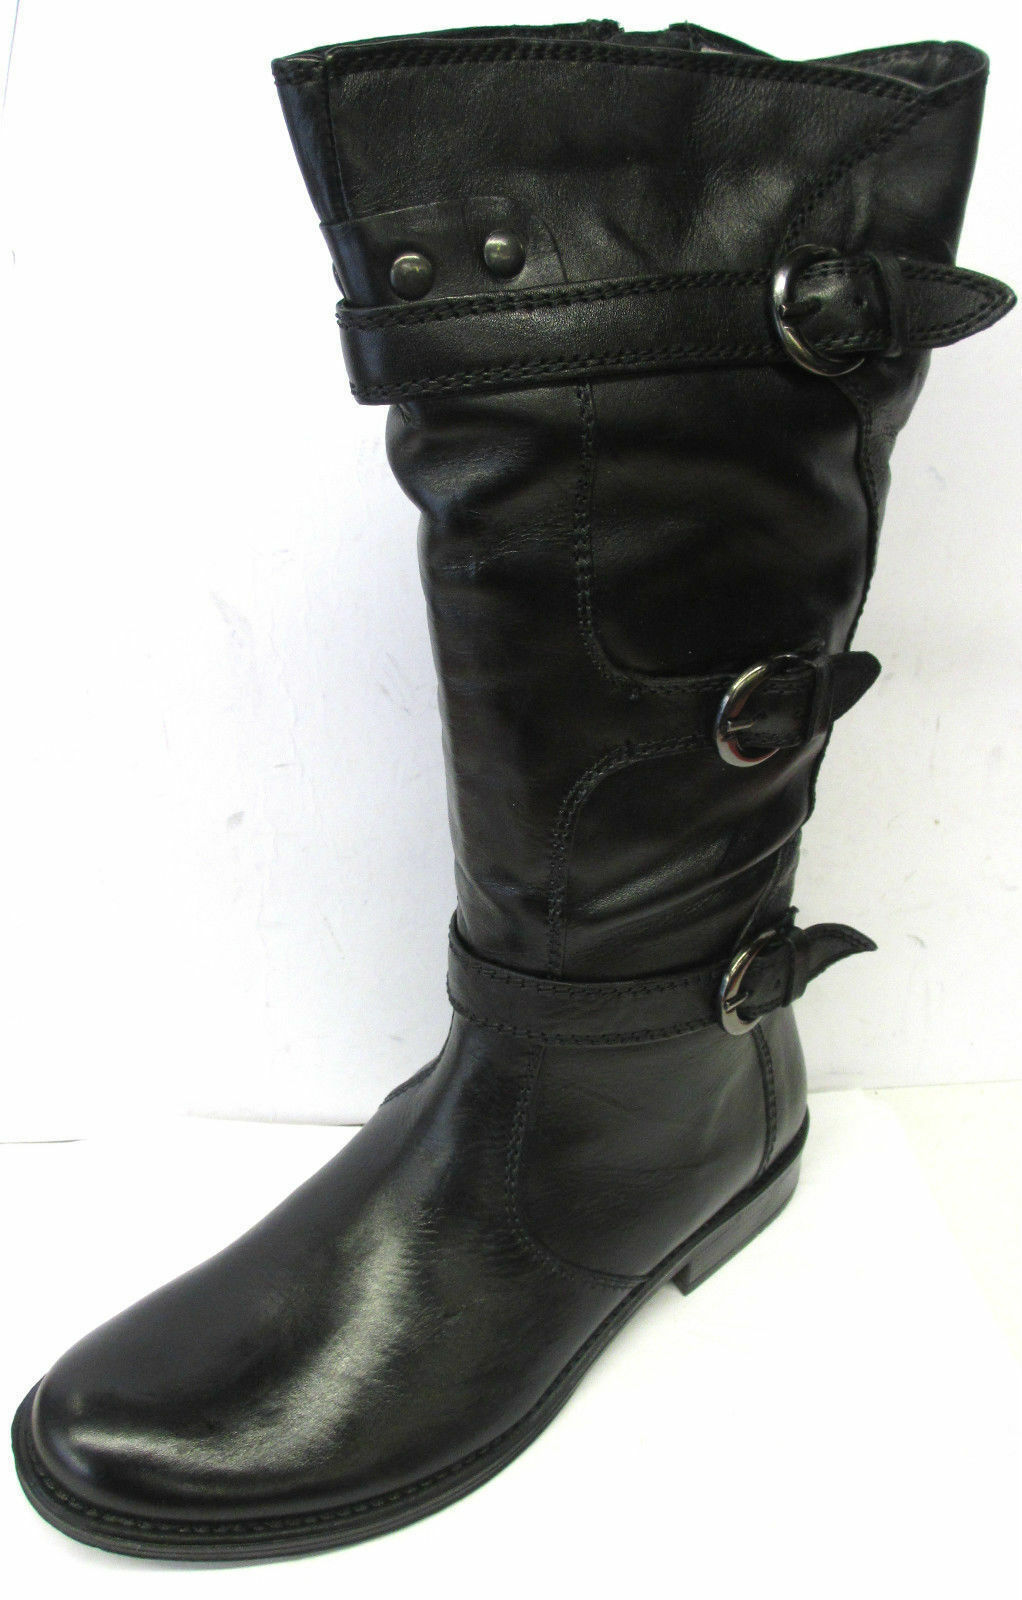 LADIES DAMENSTIEFEL BLACK LEATHER MID CALF BOOTS STYLE S-077